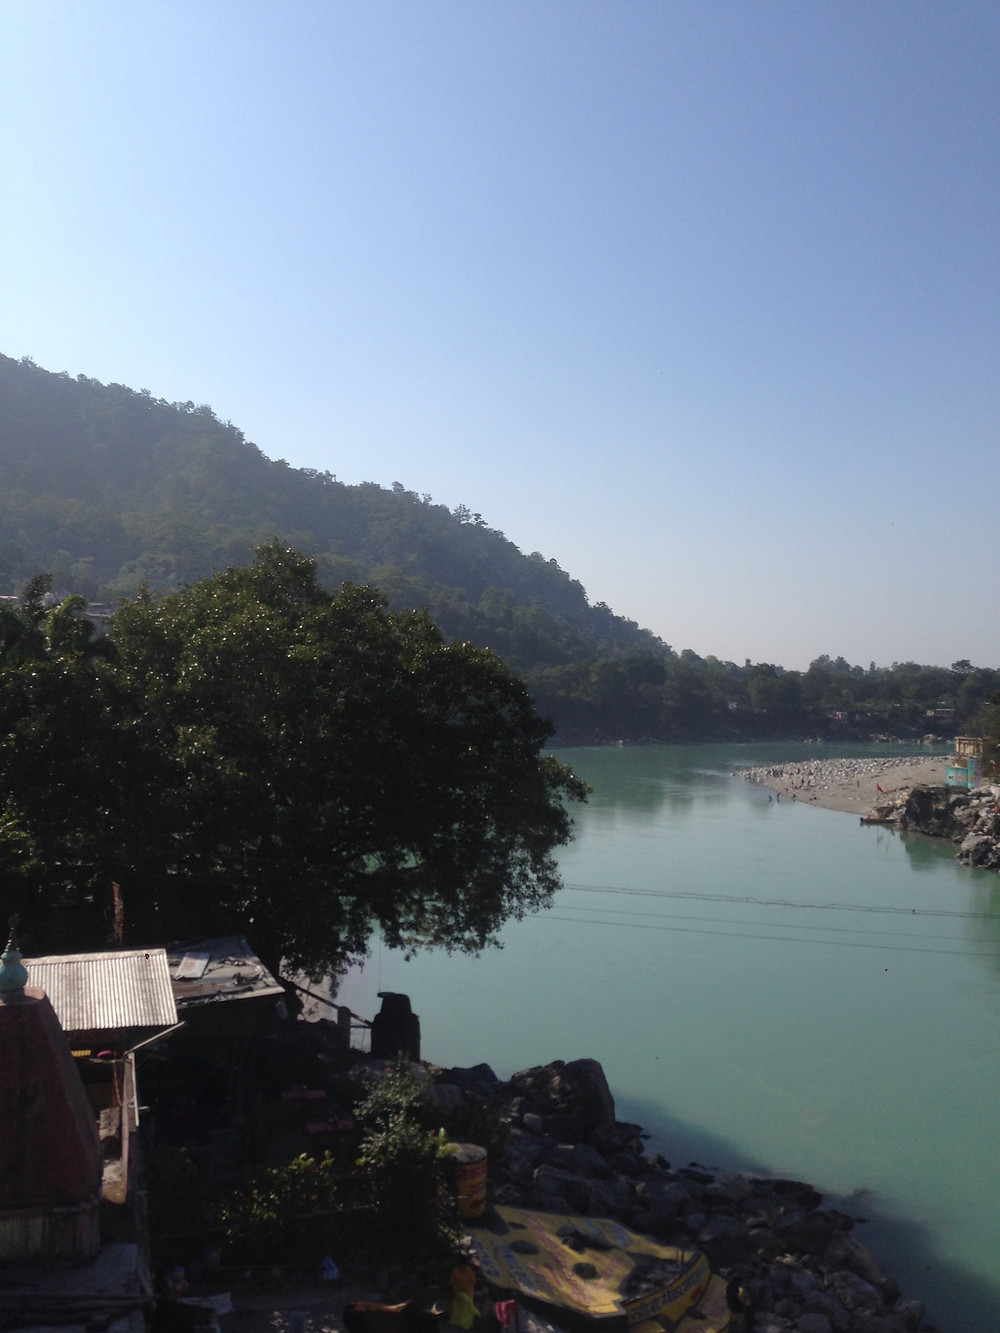 The breathtaking view of river Ganges meeting plains from Lakshman Jhulla